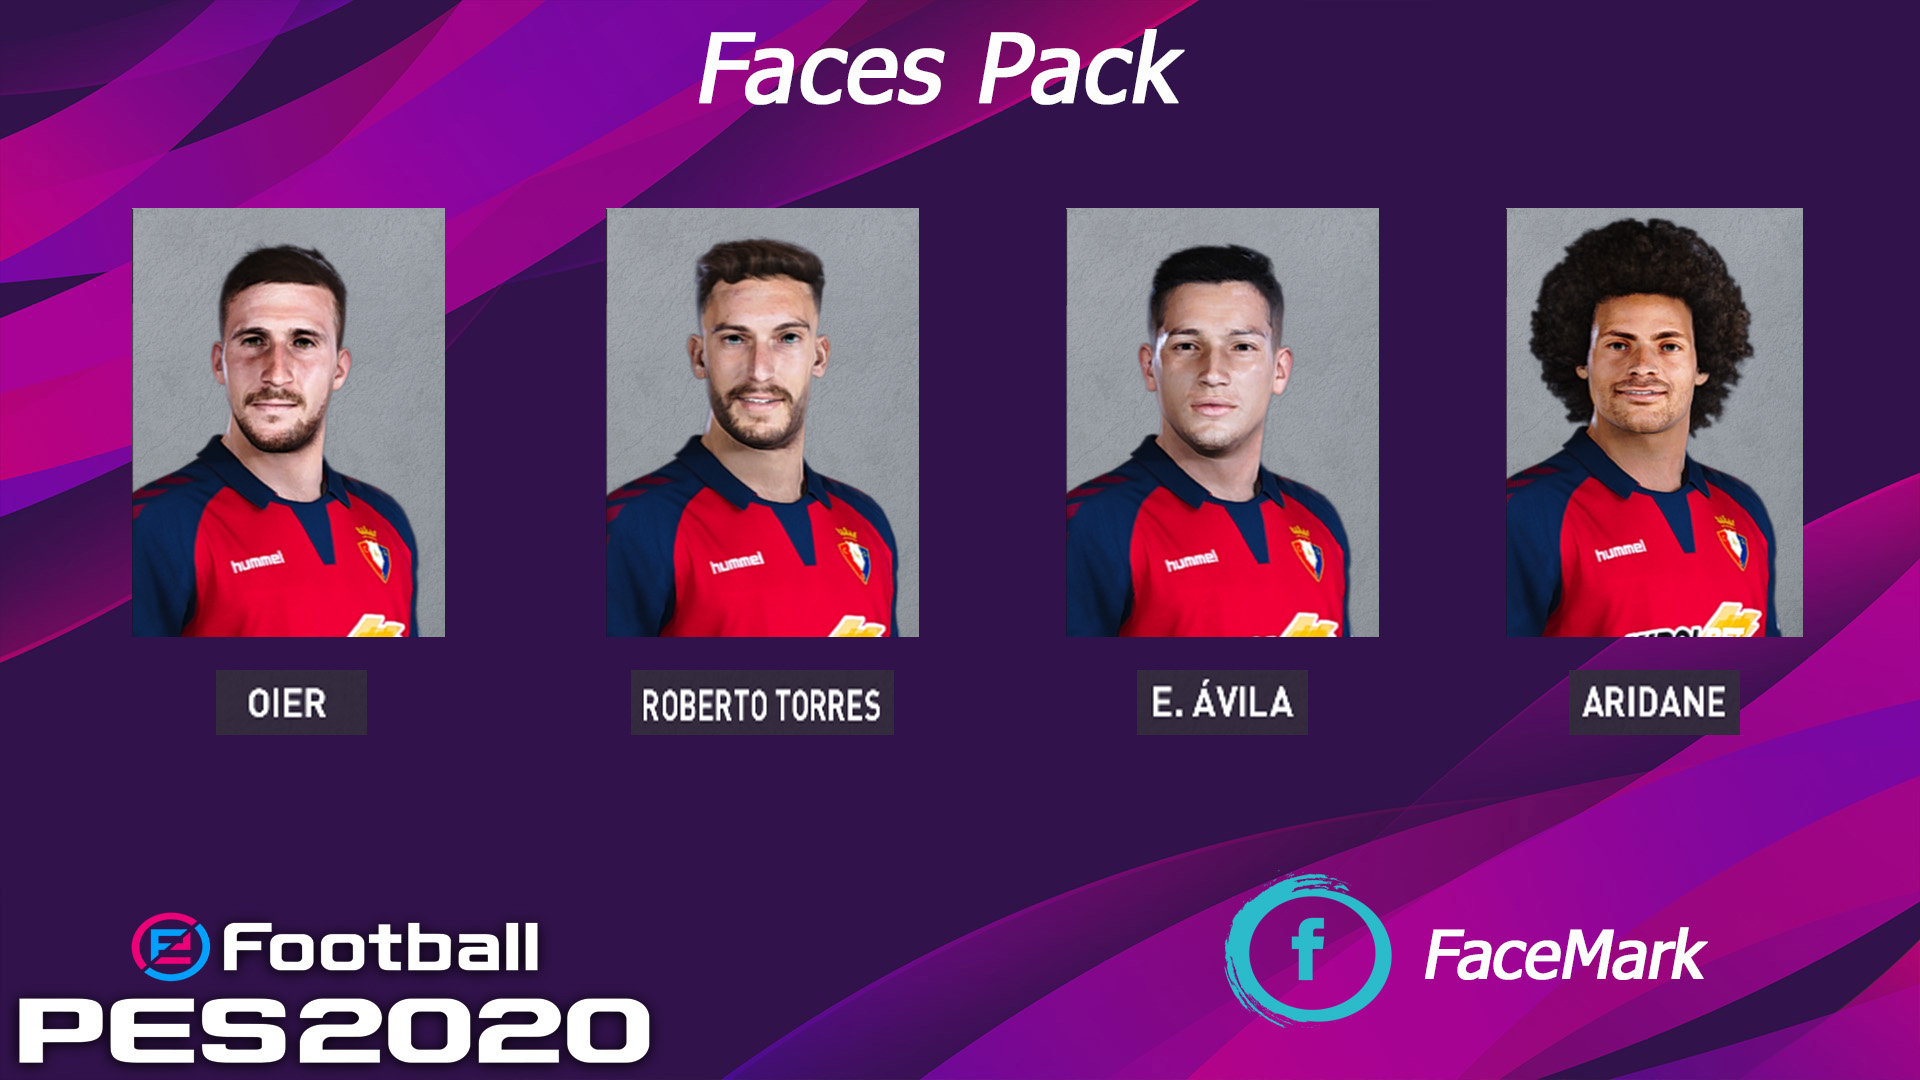 Osasuna face pack vol. 2 by Marcos Mark